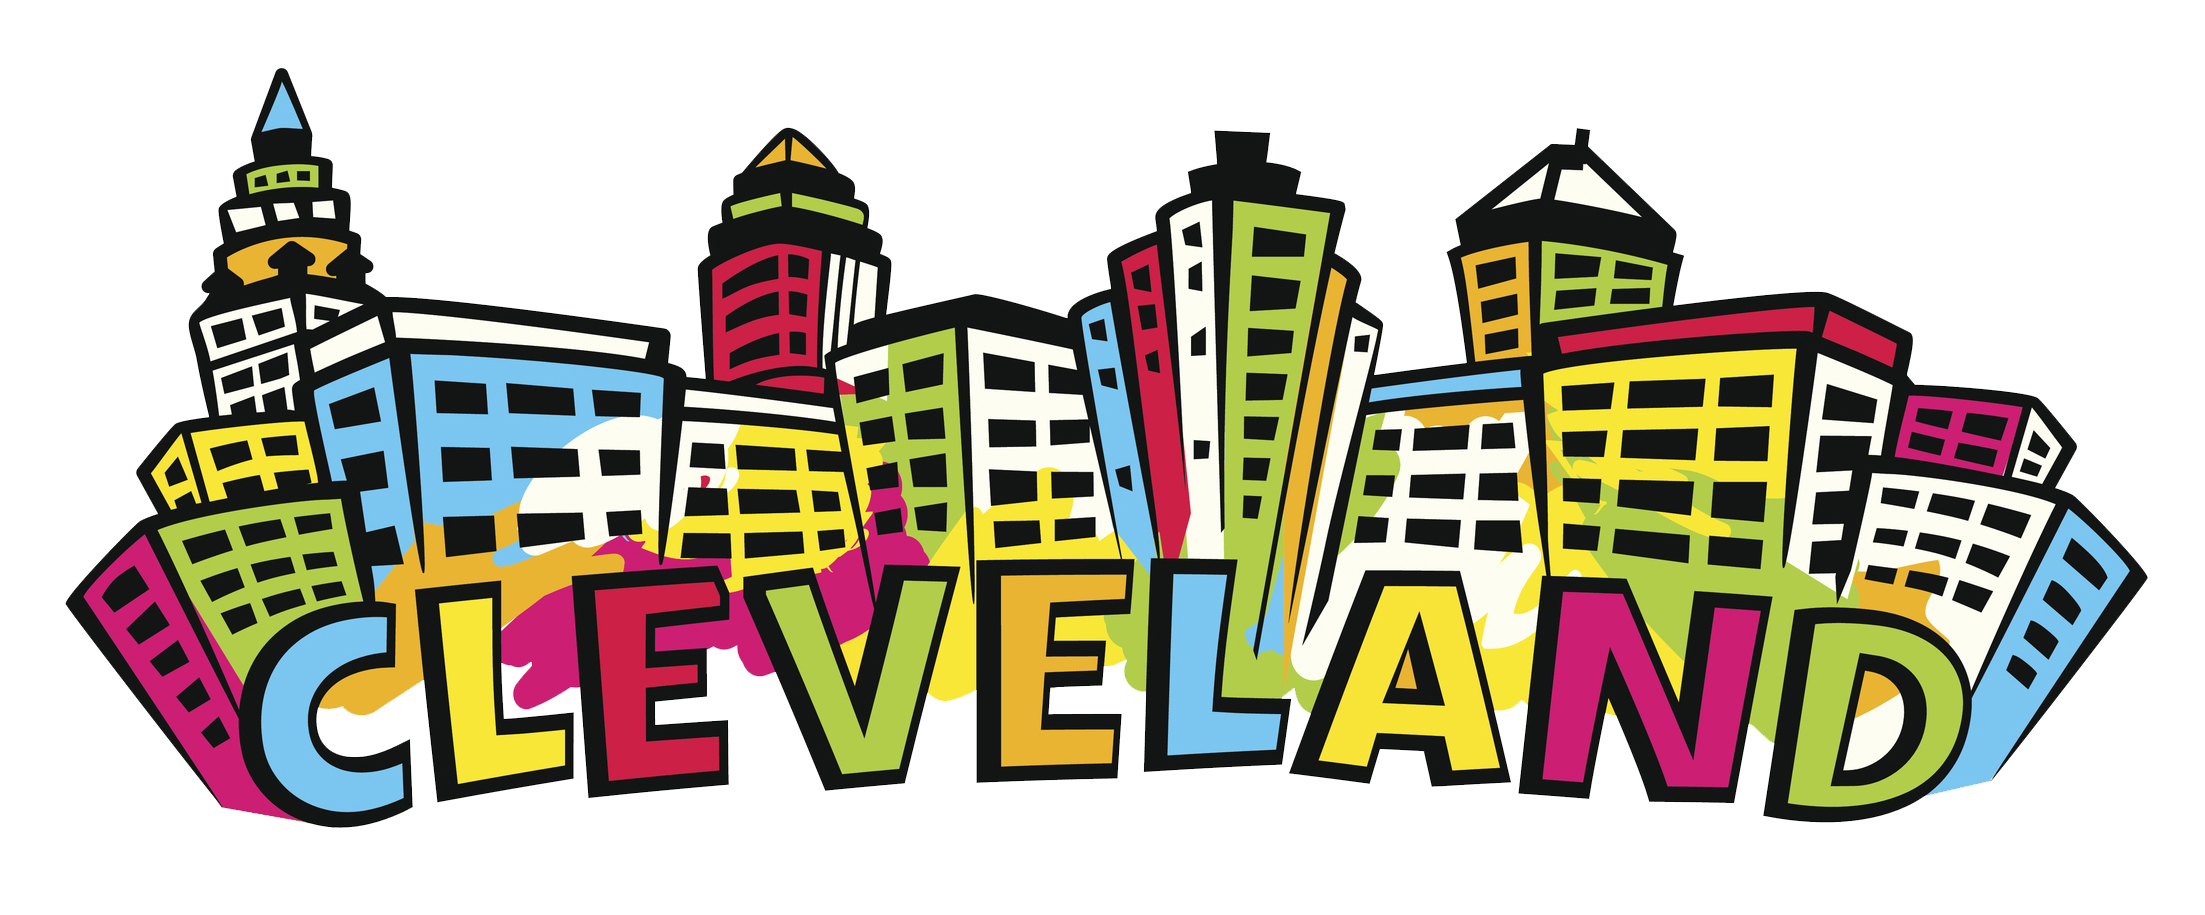 Cleveland Skyline silhouette in bright colors